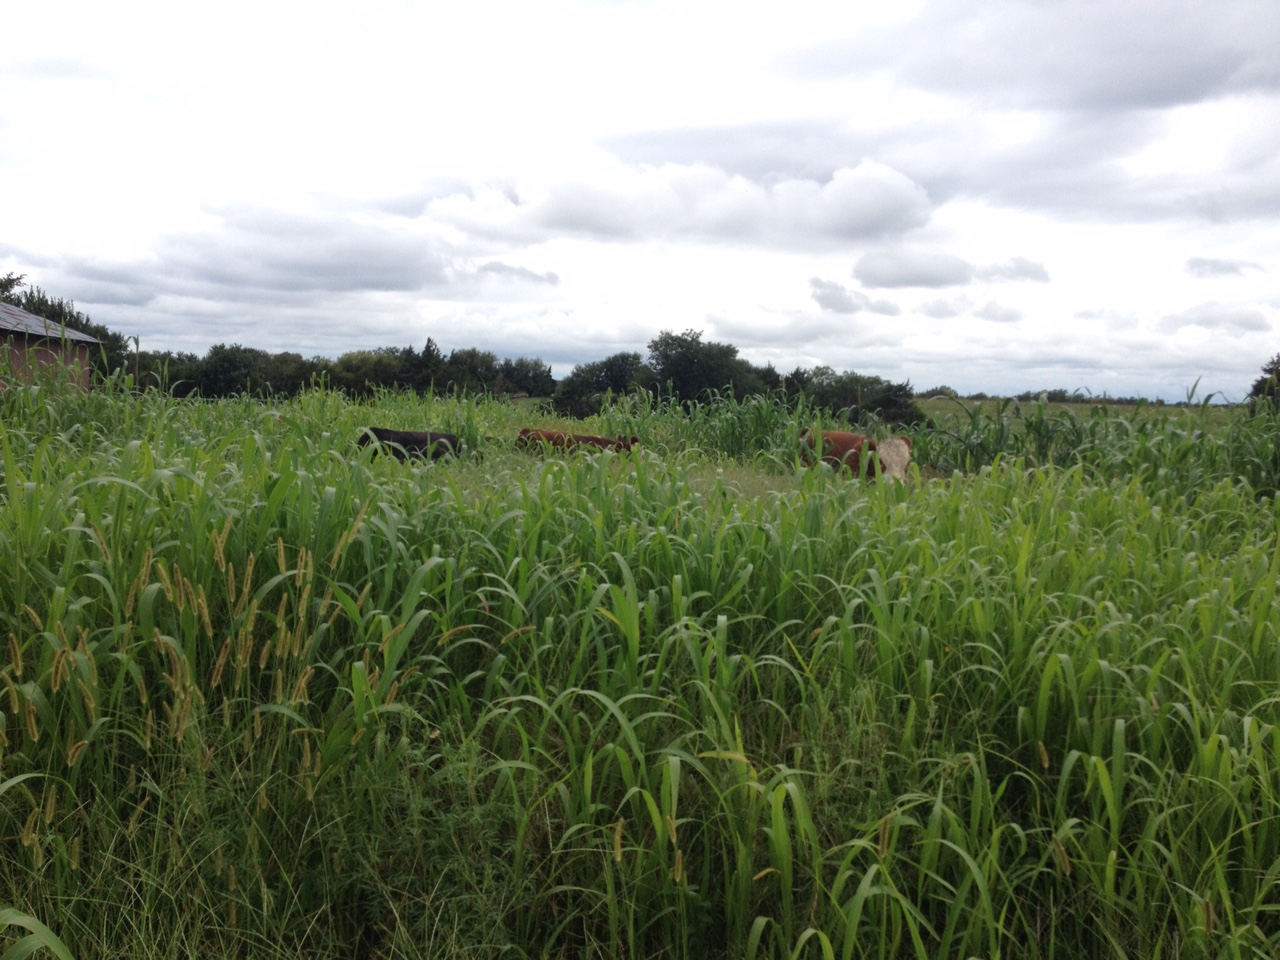 Yearling steers and a young bull enjoying the sorghum sudan and other forages, August 30, 2016. A patch of taller, darker growth is seen in the back.